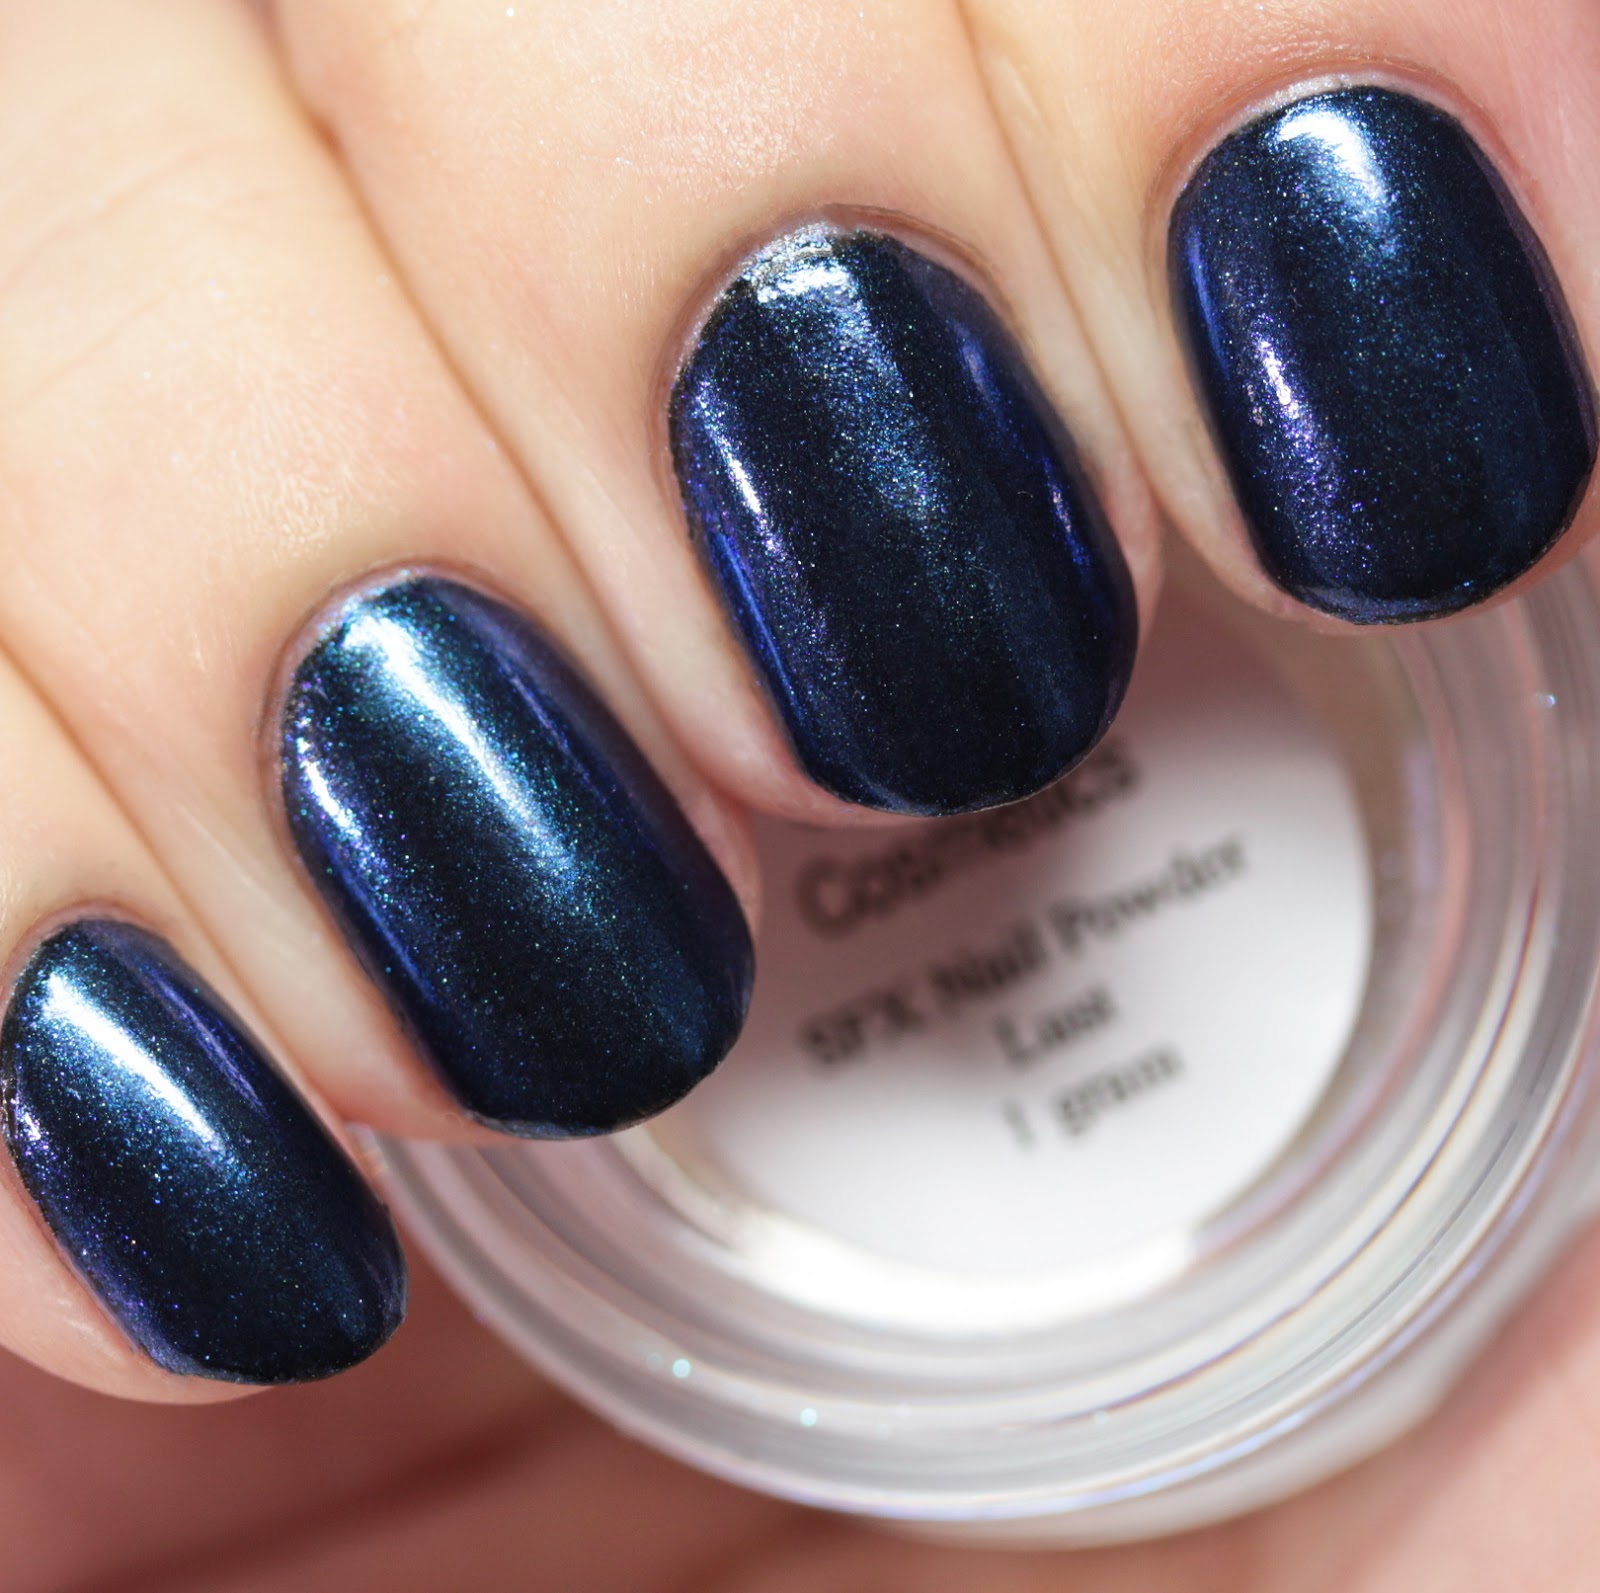 The Polished Hippy: Girly Bits Cosmetics SFX Duo-chrome